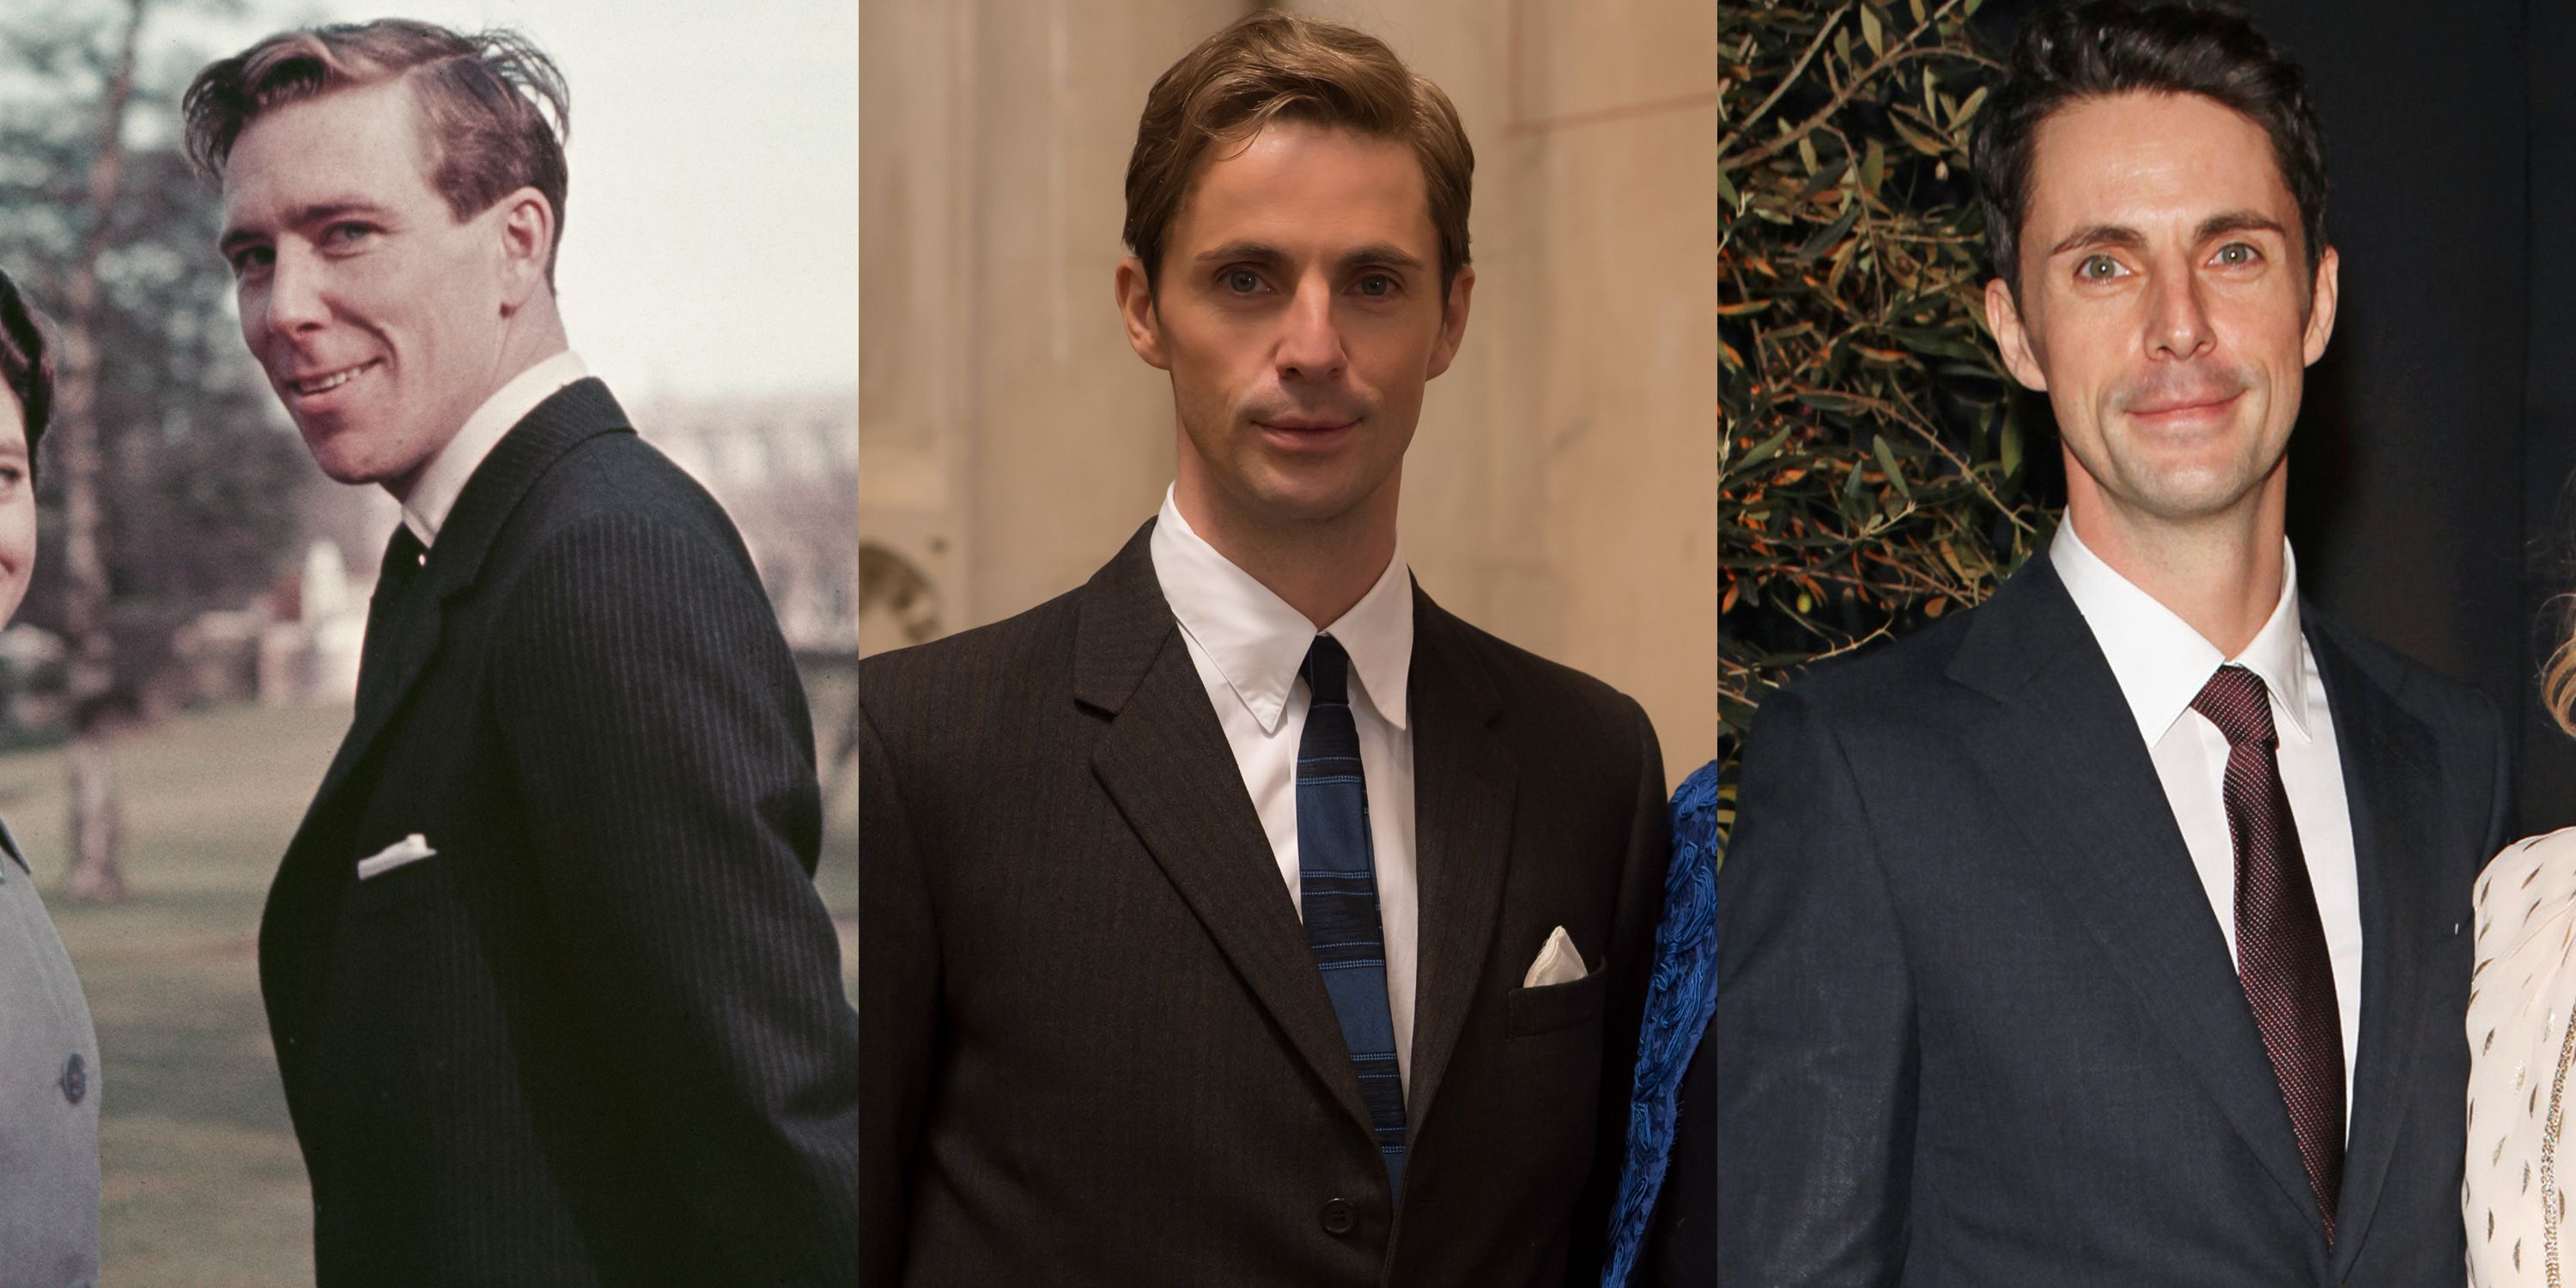 The Cast of The Crown Looks Just Like Their Real-Life Counterparts